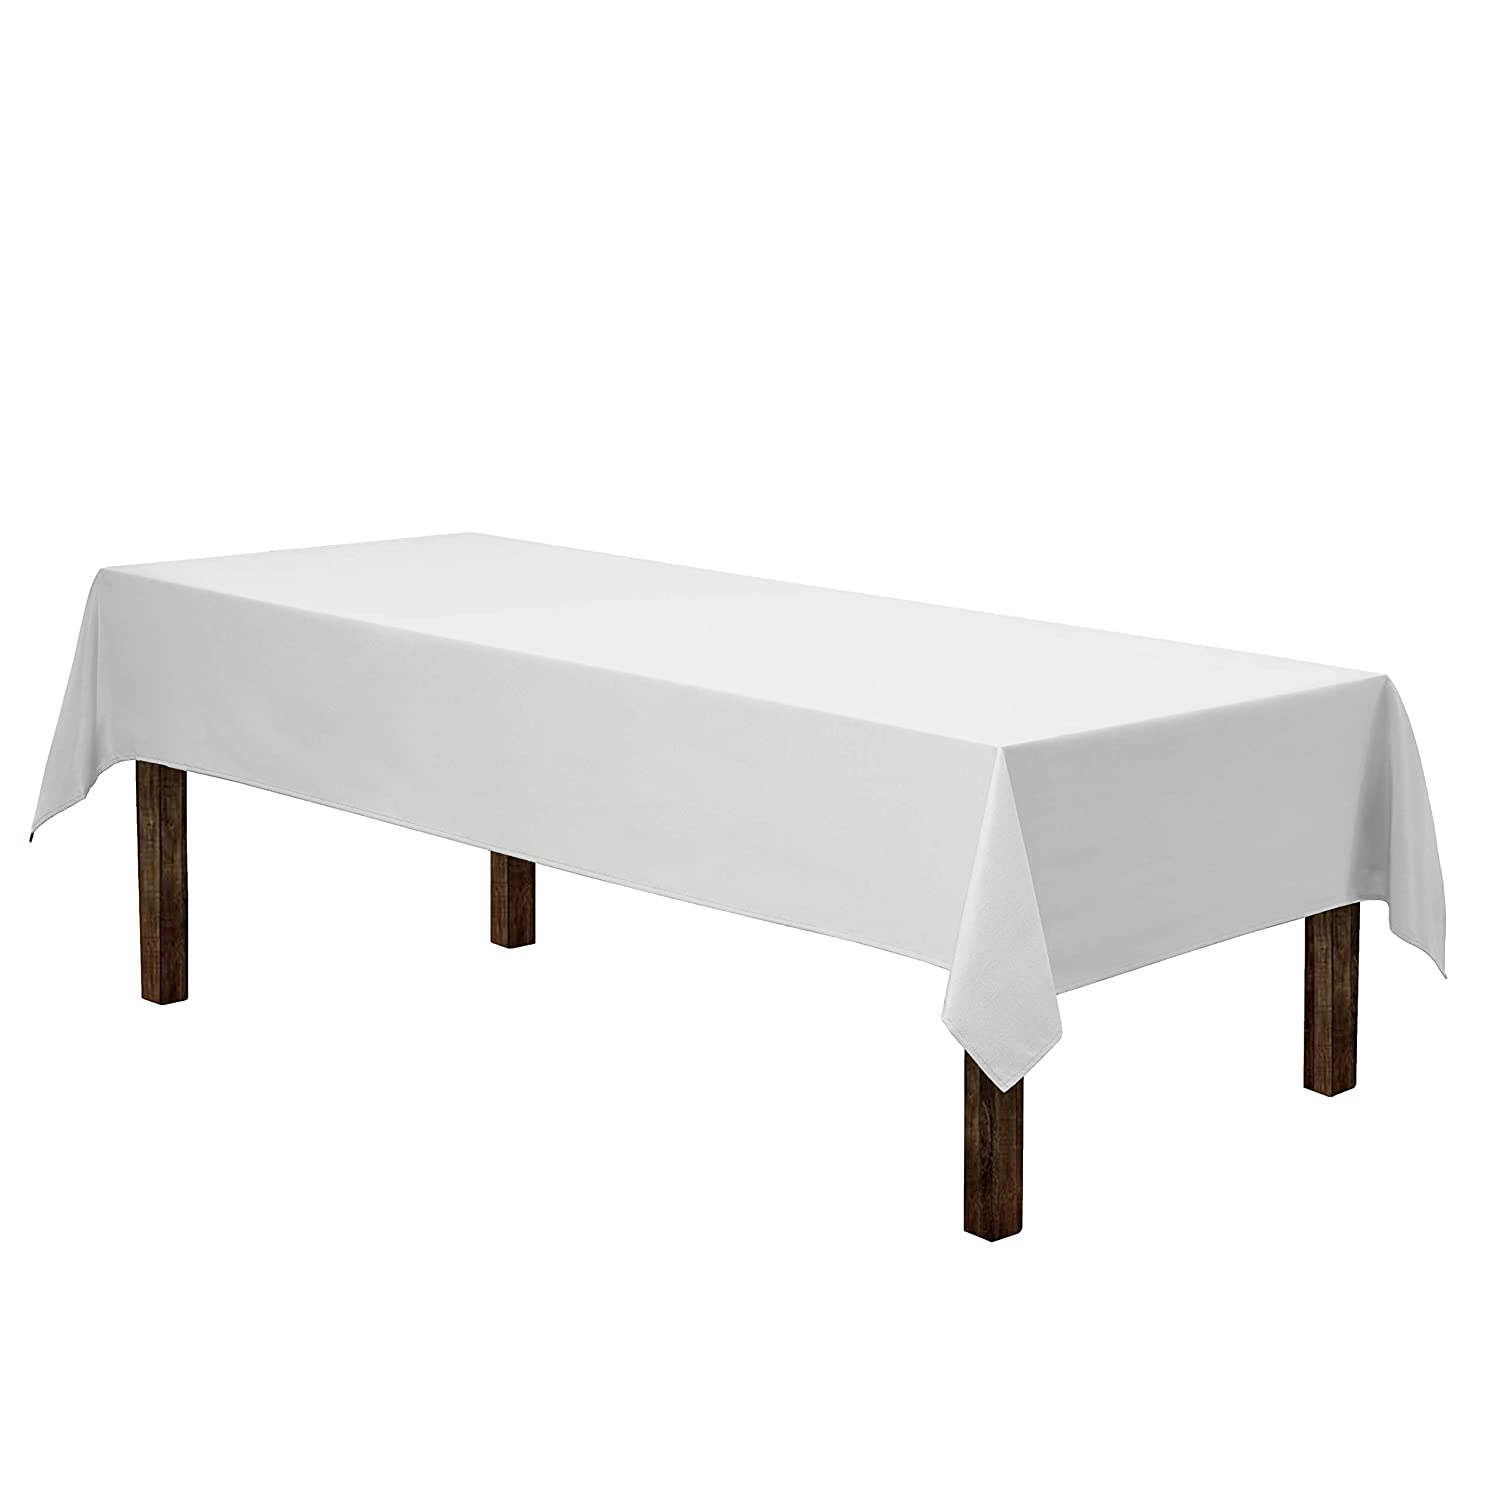 """Gee Di Moda Rectangle Tablecloth - 60 x 126"""" Inch - White Rectangular Table Cloth for 8 Foot Table in Washable Polyester - Great for Buffet Table, Parties, Holiday Dinner, Wedding & More"""